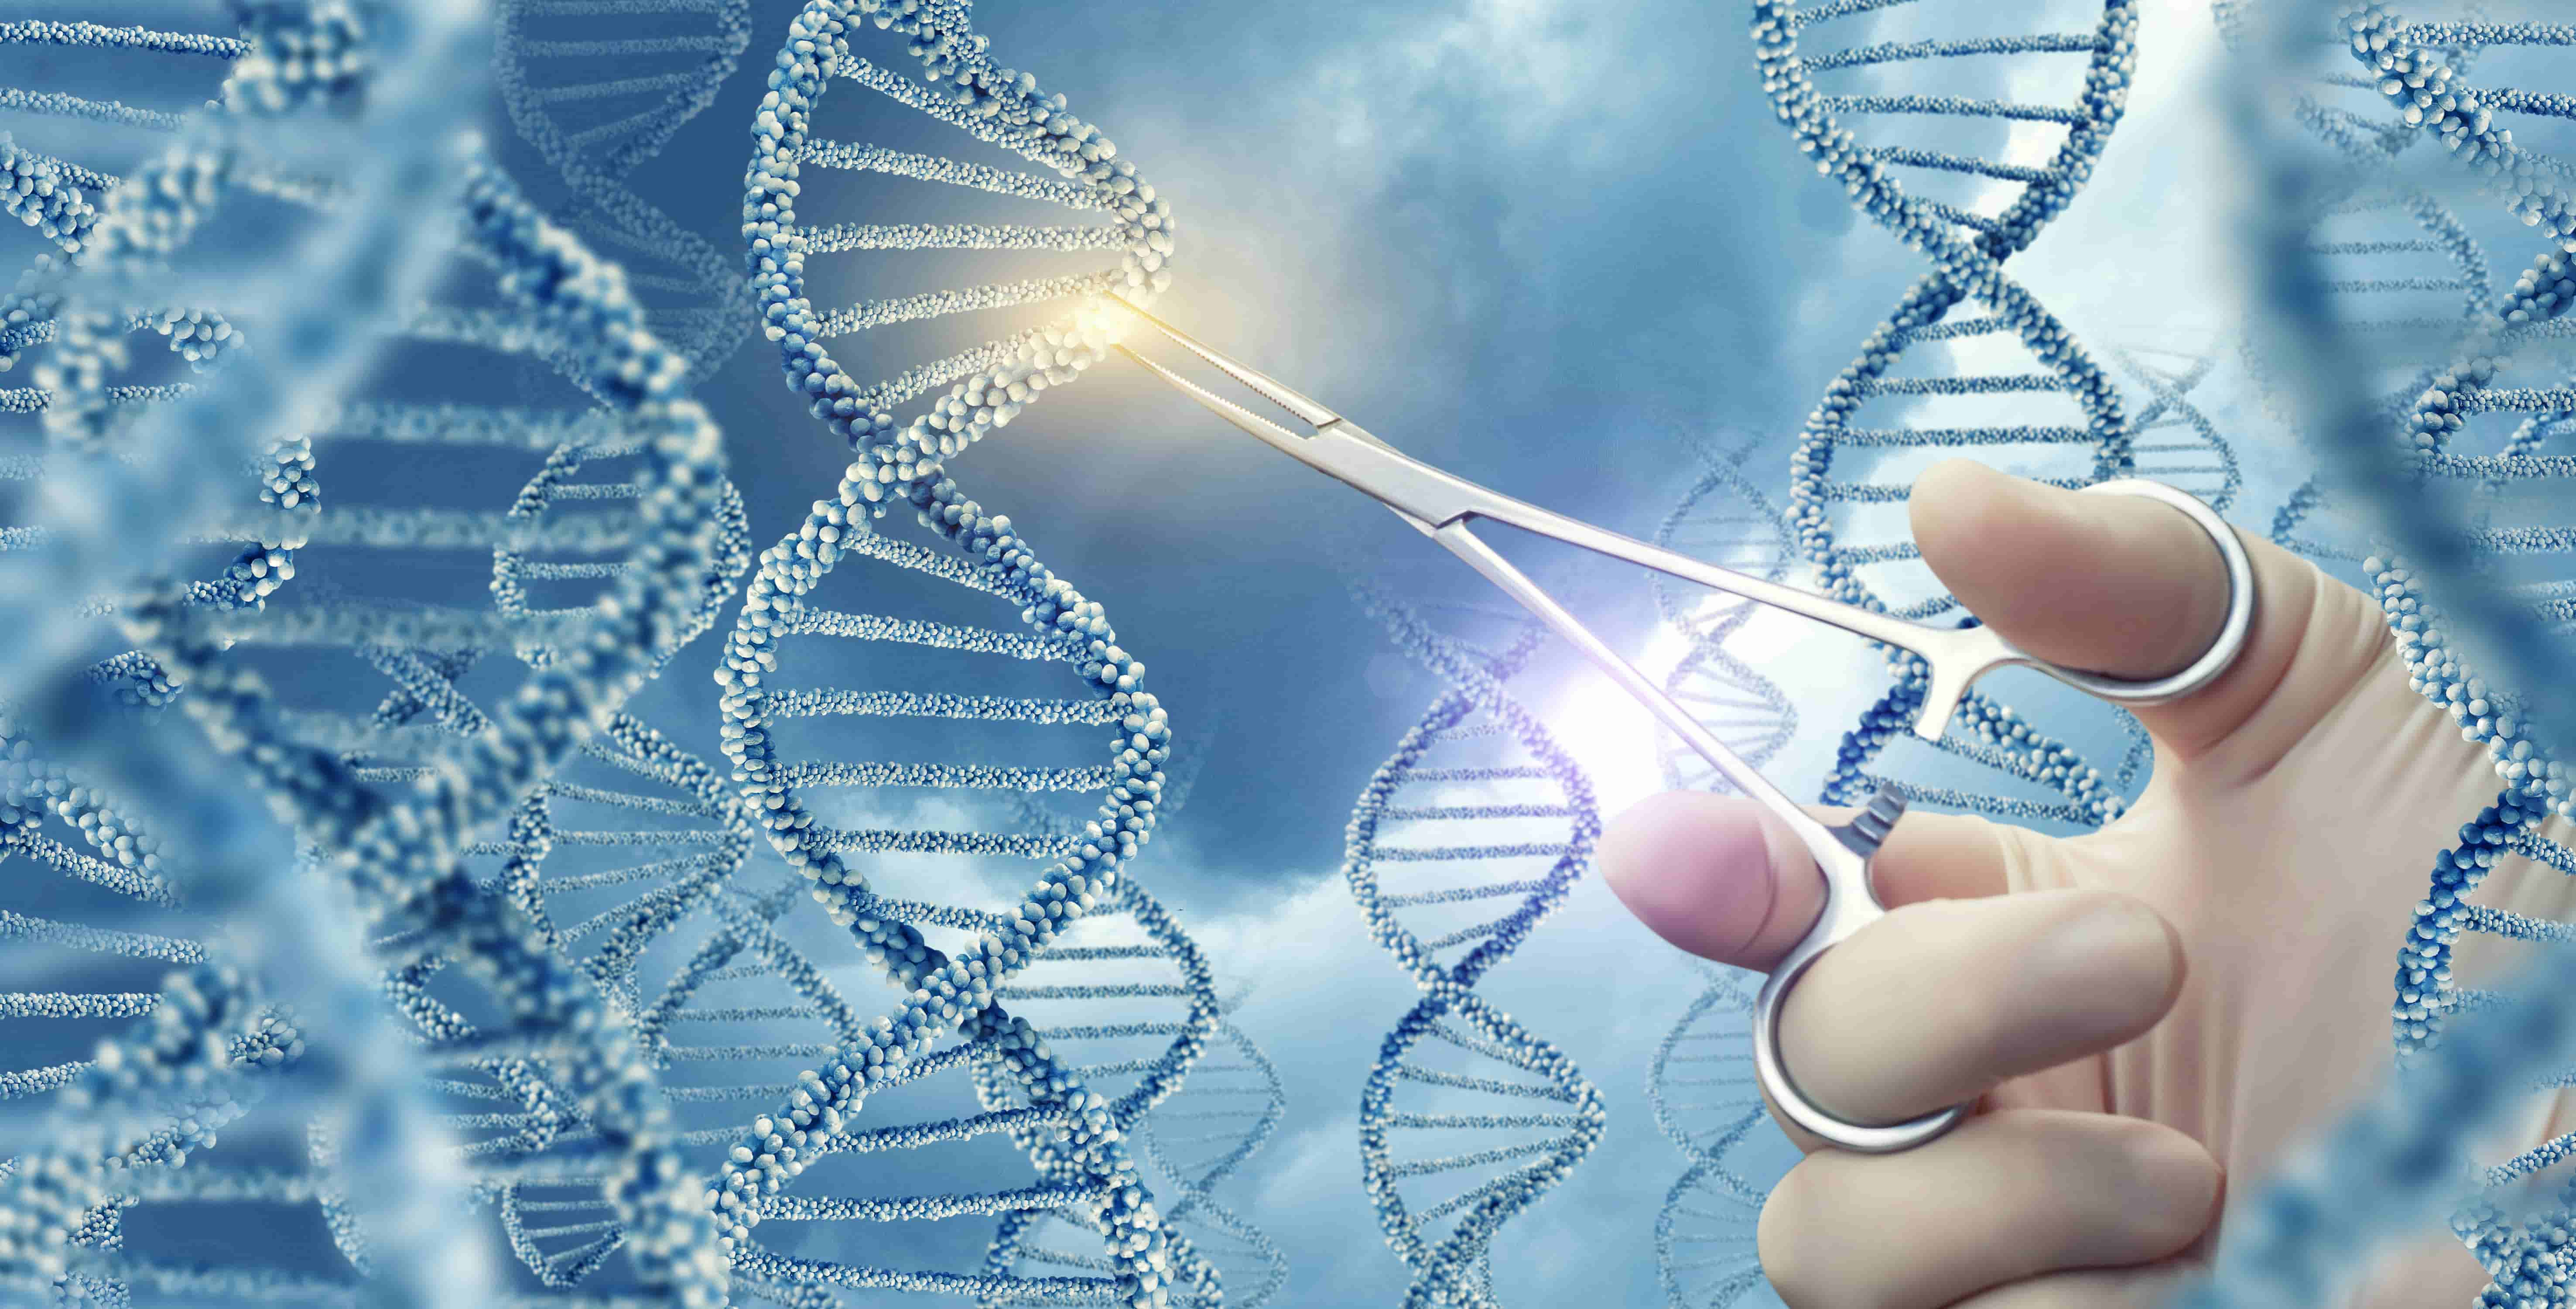 Scientists Battle Ownership of Patents for Gene-Editing Tool